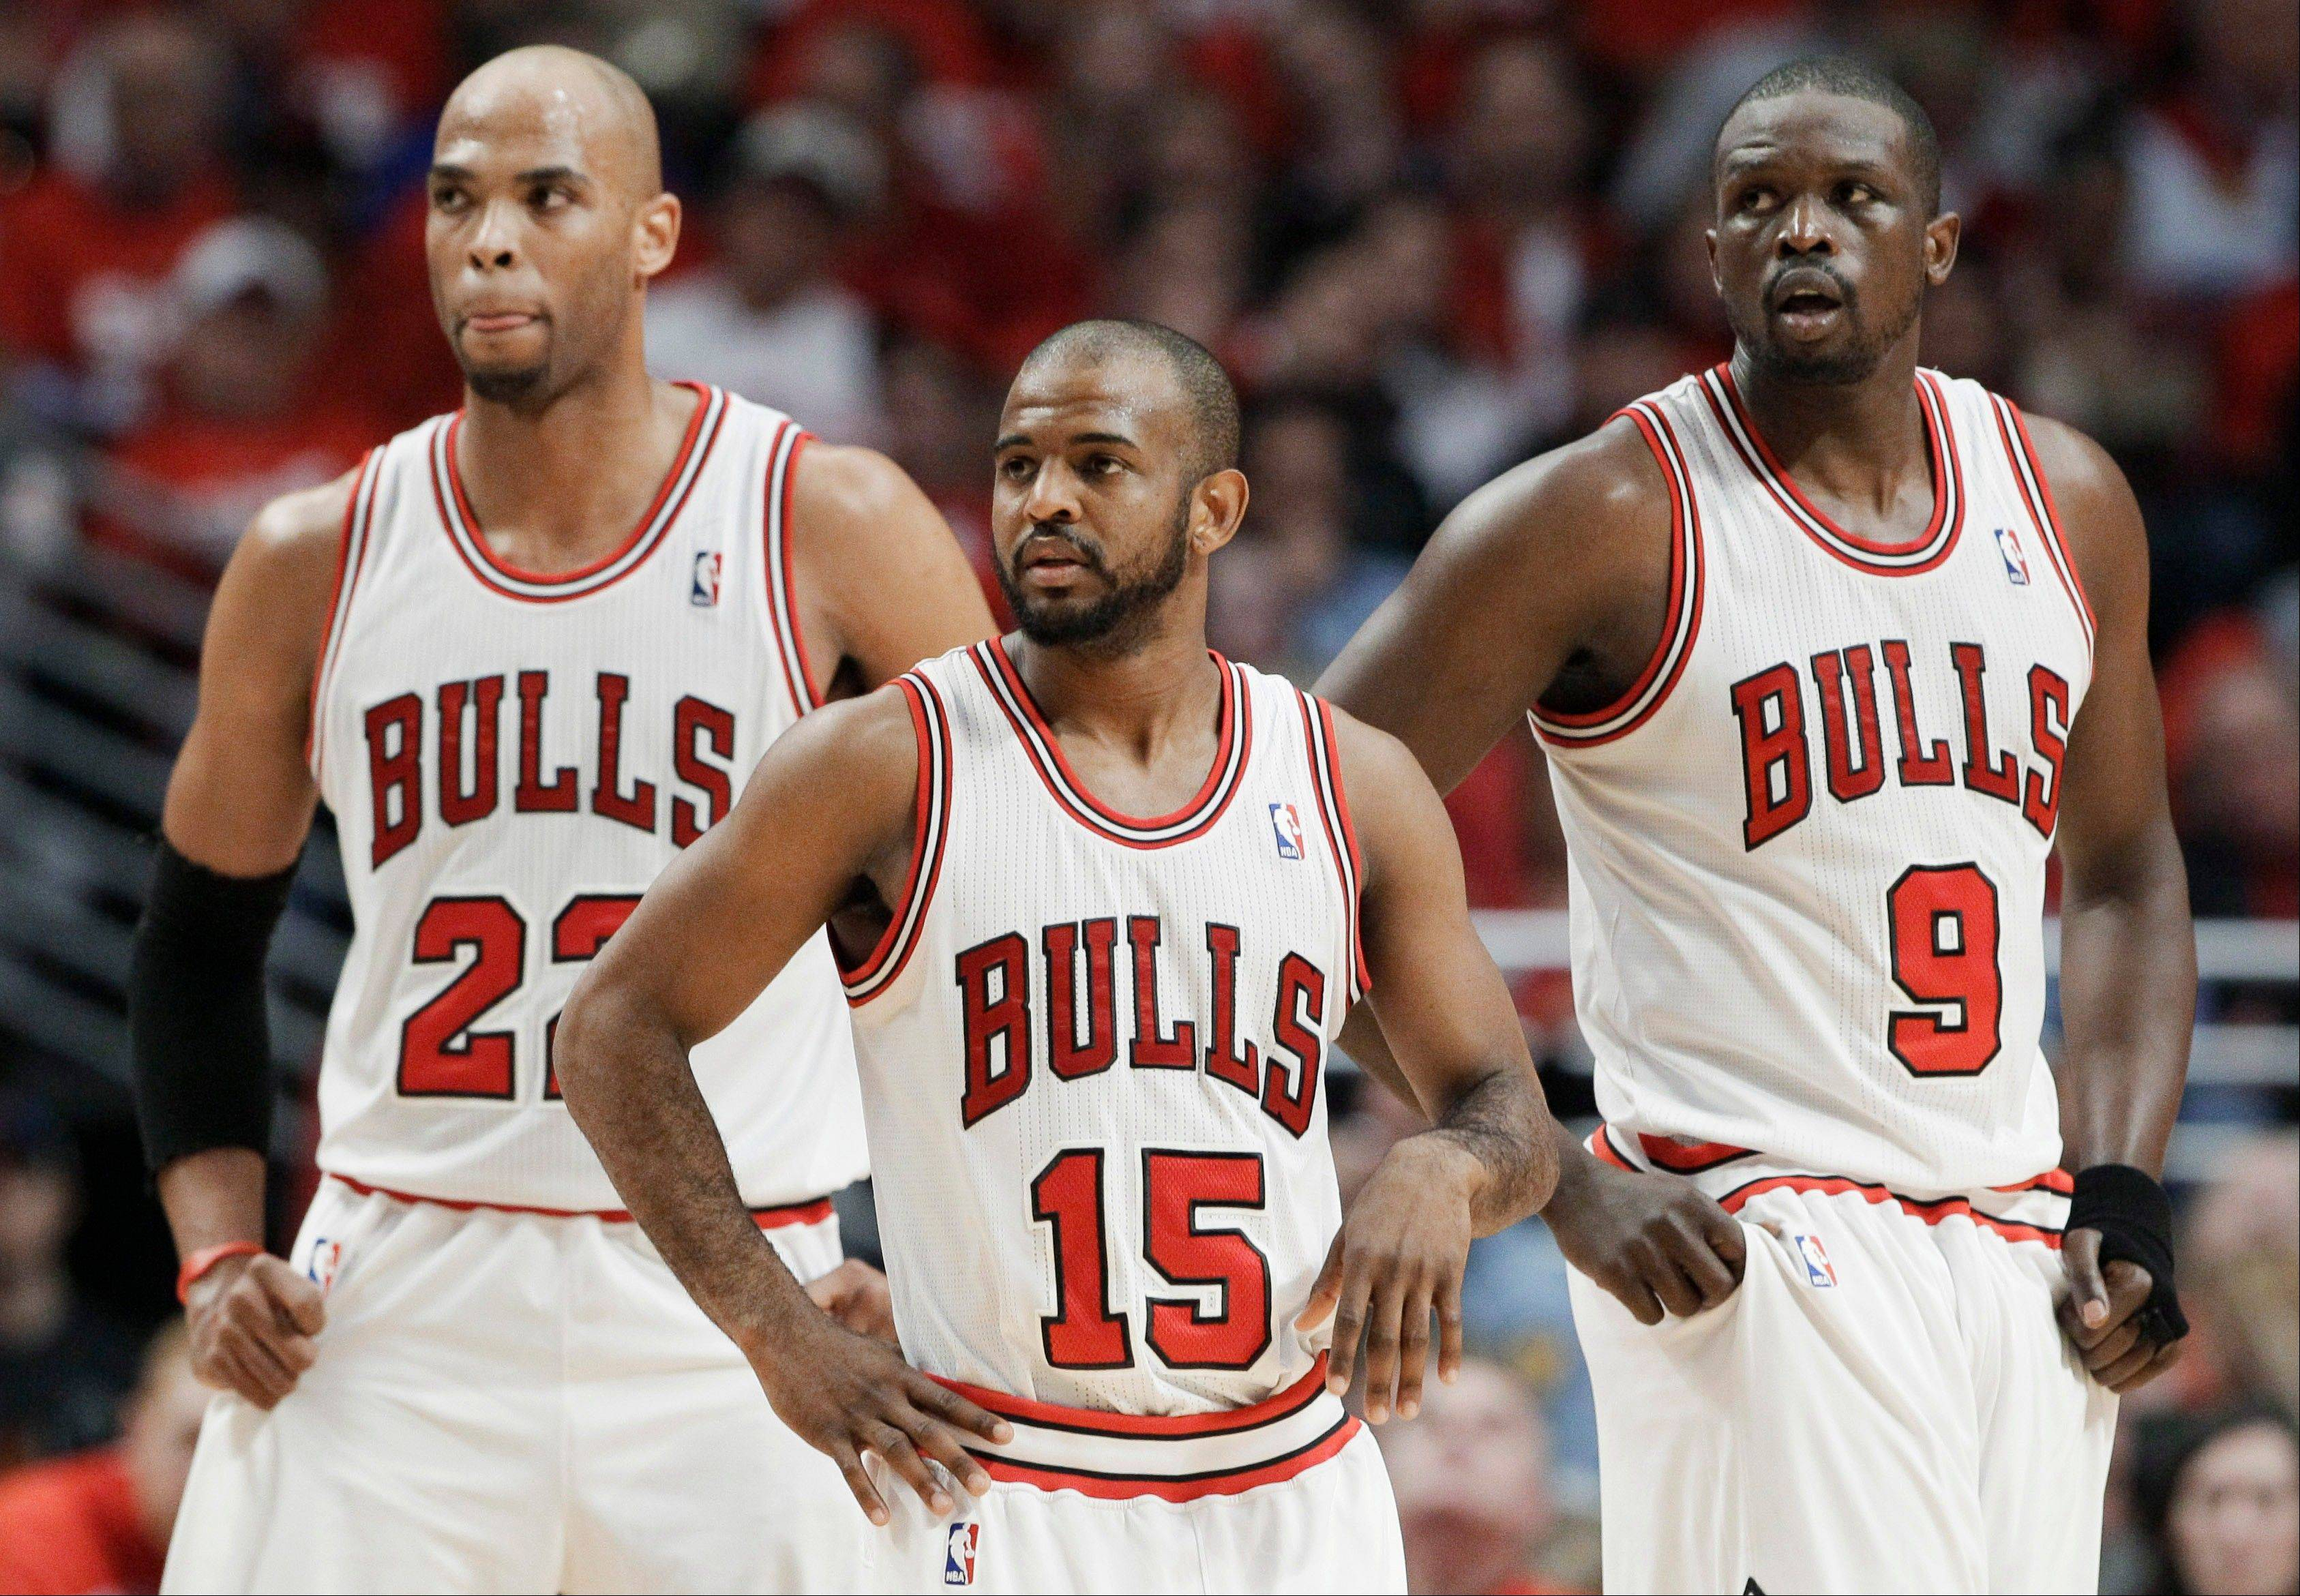 Bulls forward Taj Gibson, guard John Lucas III and forward Luol Deng pause during the third quarter of Game 2 Tuesday against the Philadelphia 76ers in Chicago.